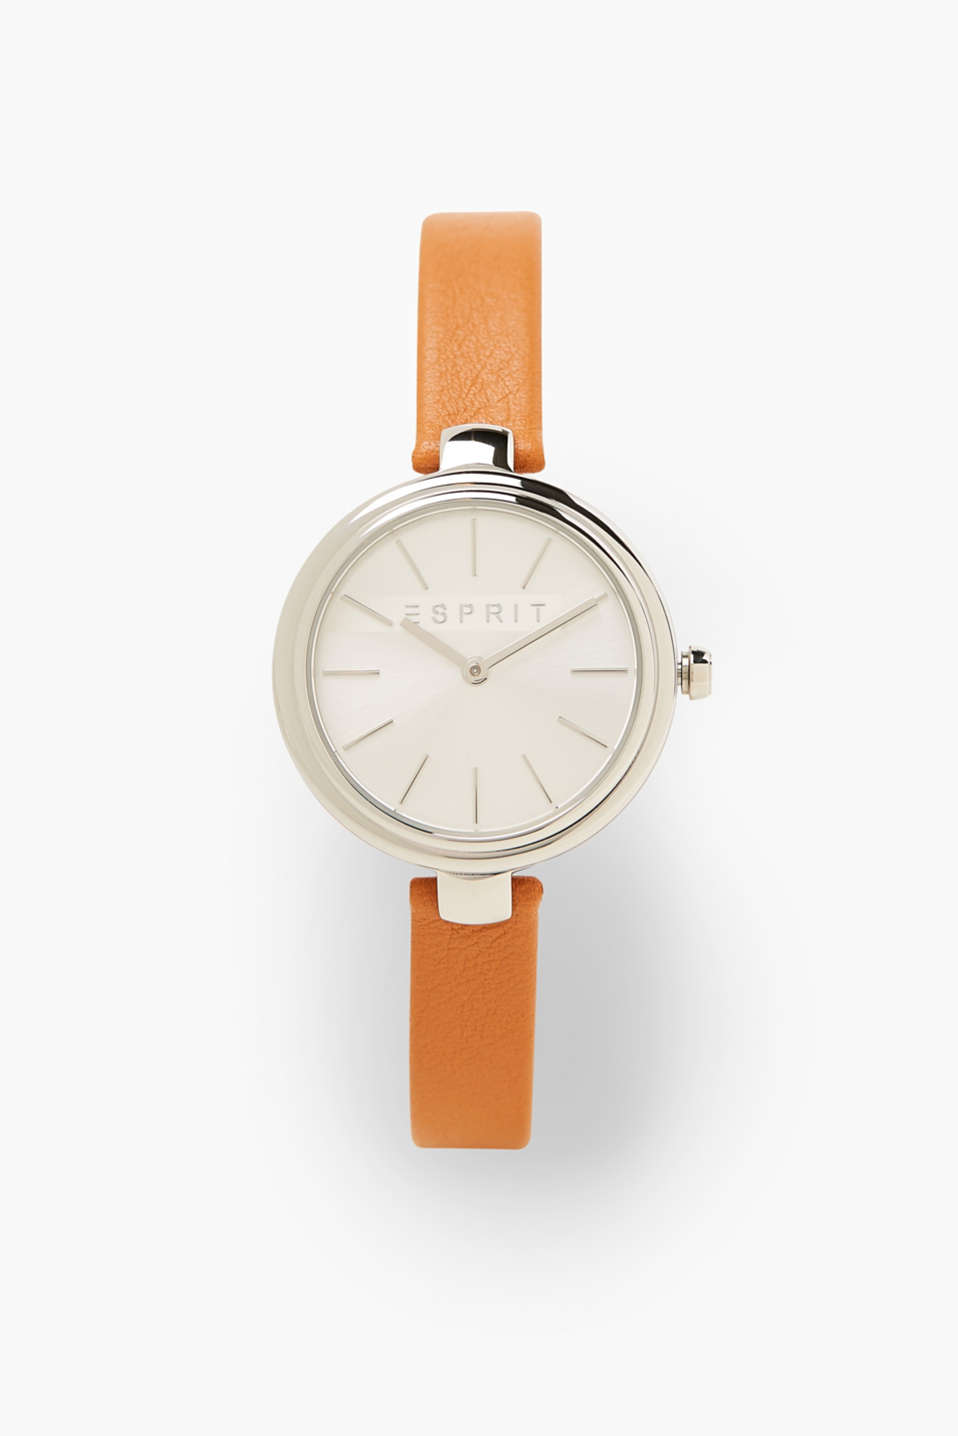 Esprit - Stainless steel watch, narrow leather strap